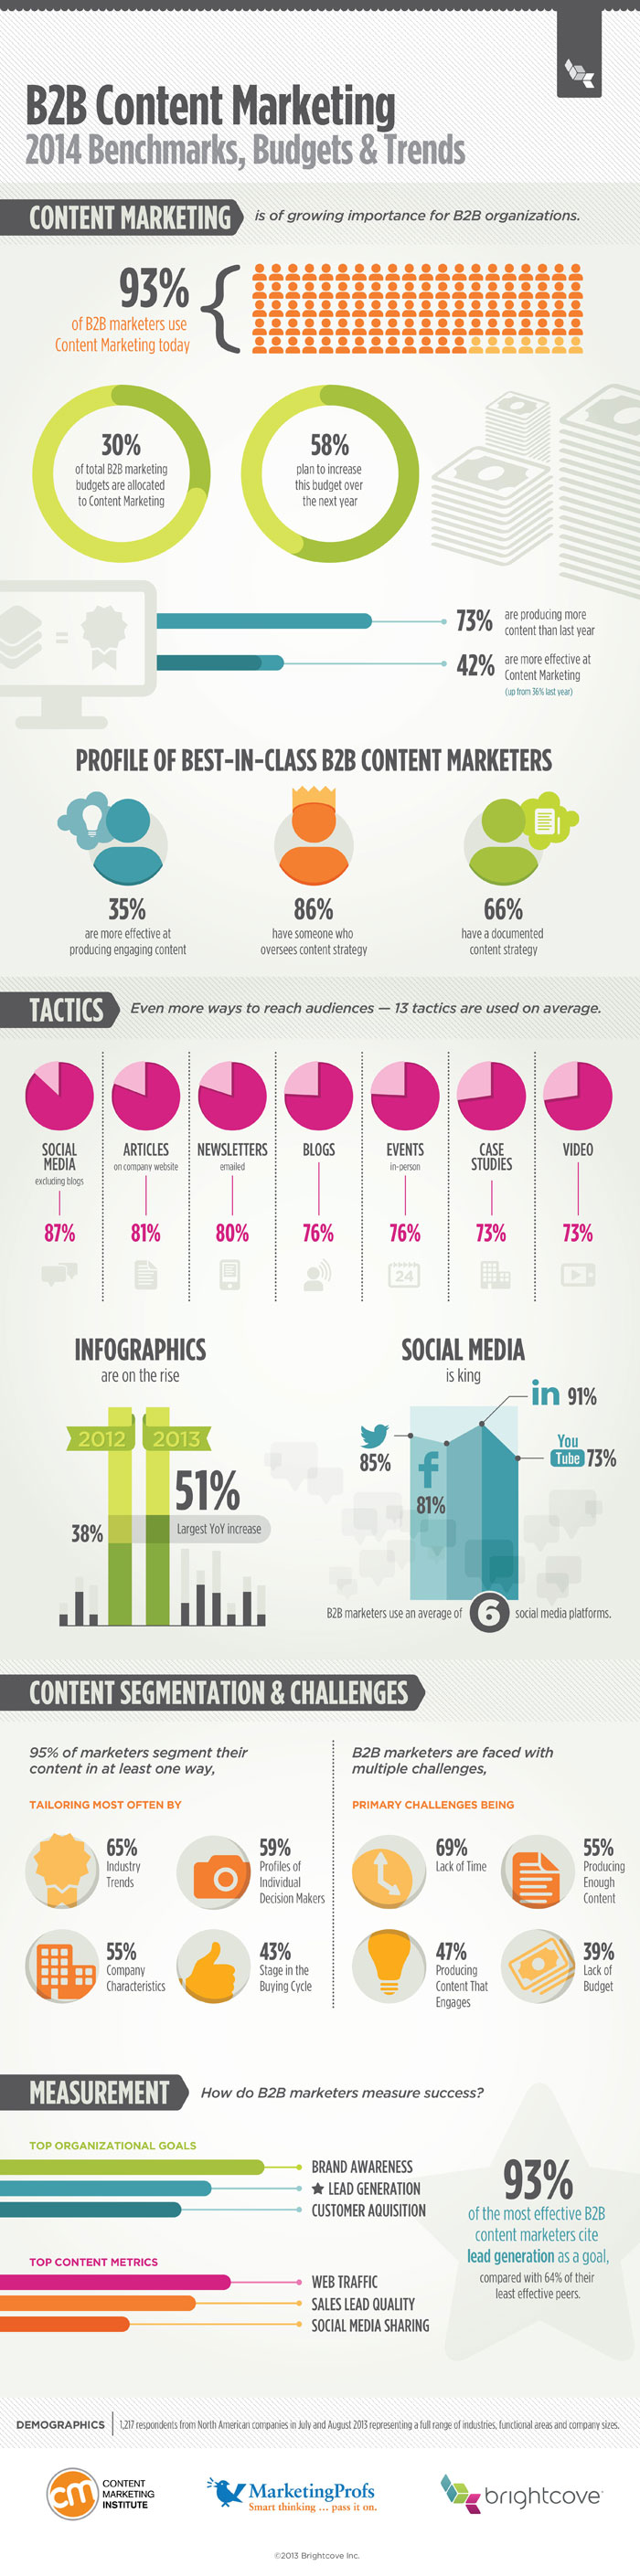 B2B Content Marketing Trends Infographic